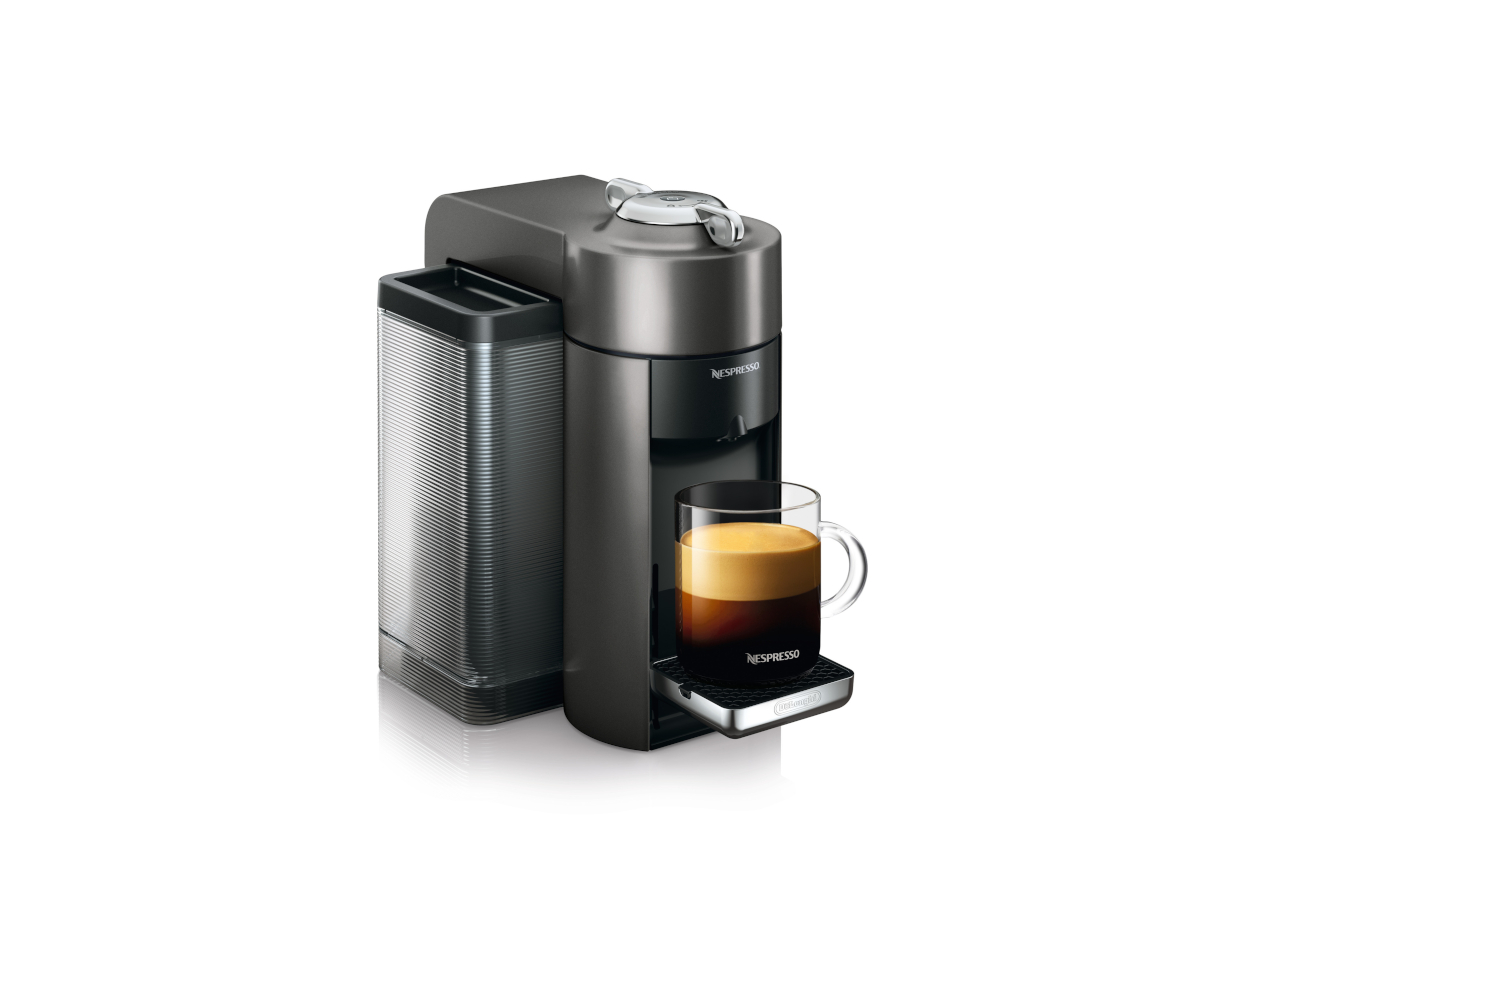 Nespresso Vertuo Coffee & Espresso Machine by De'Longhi - Graphite Metal